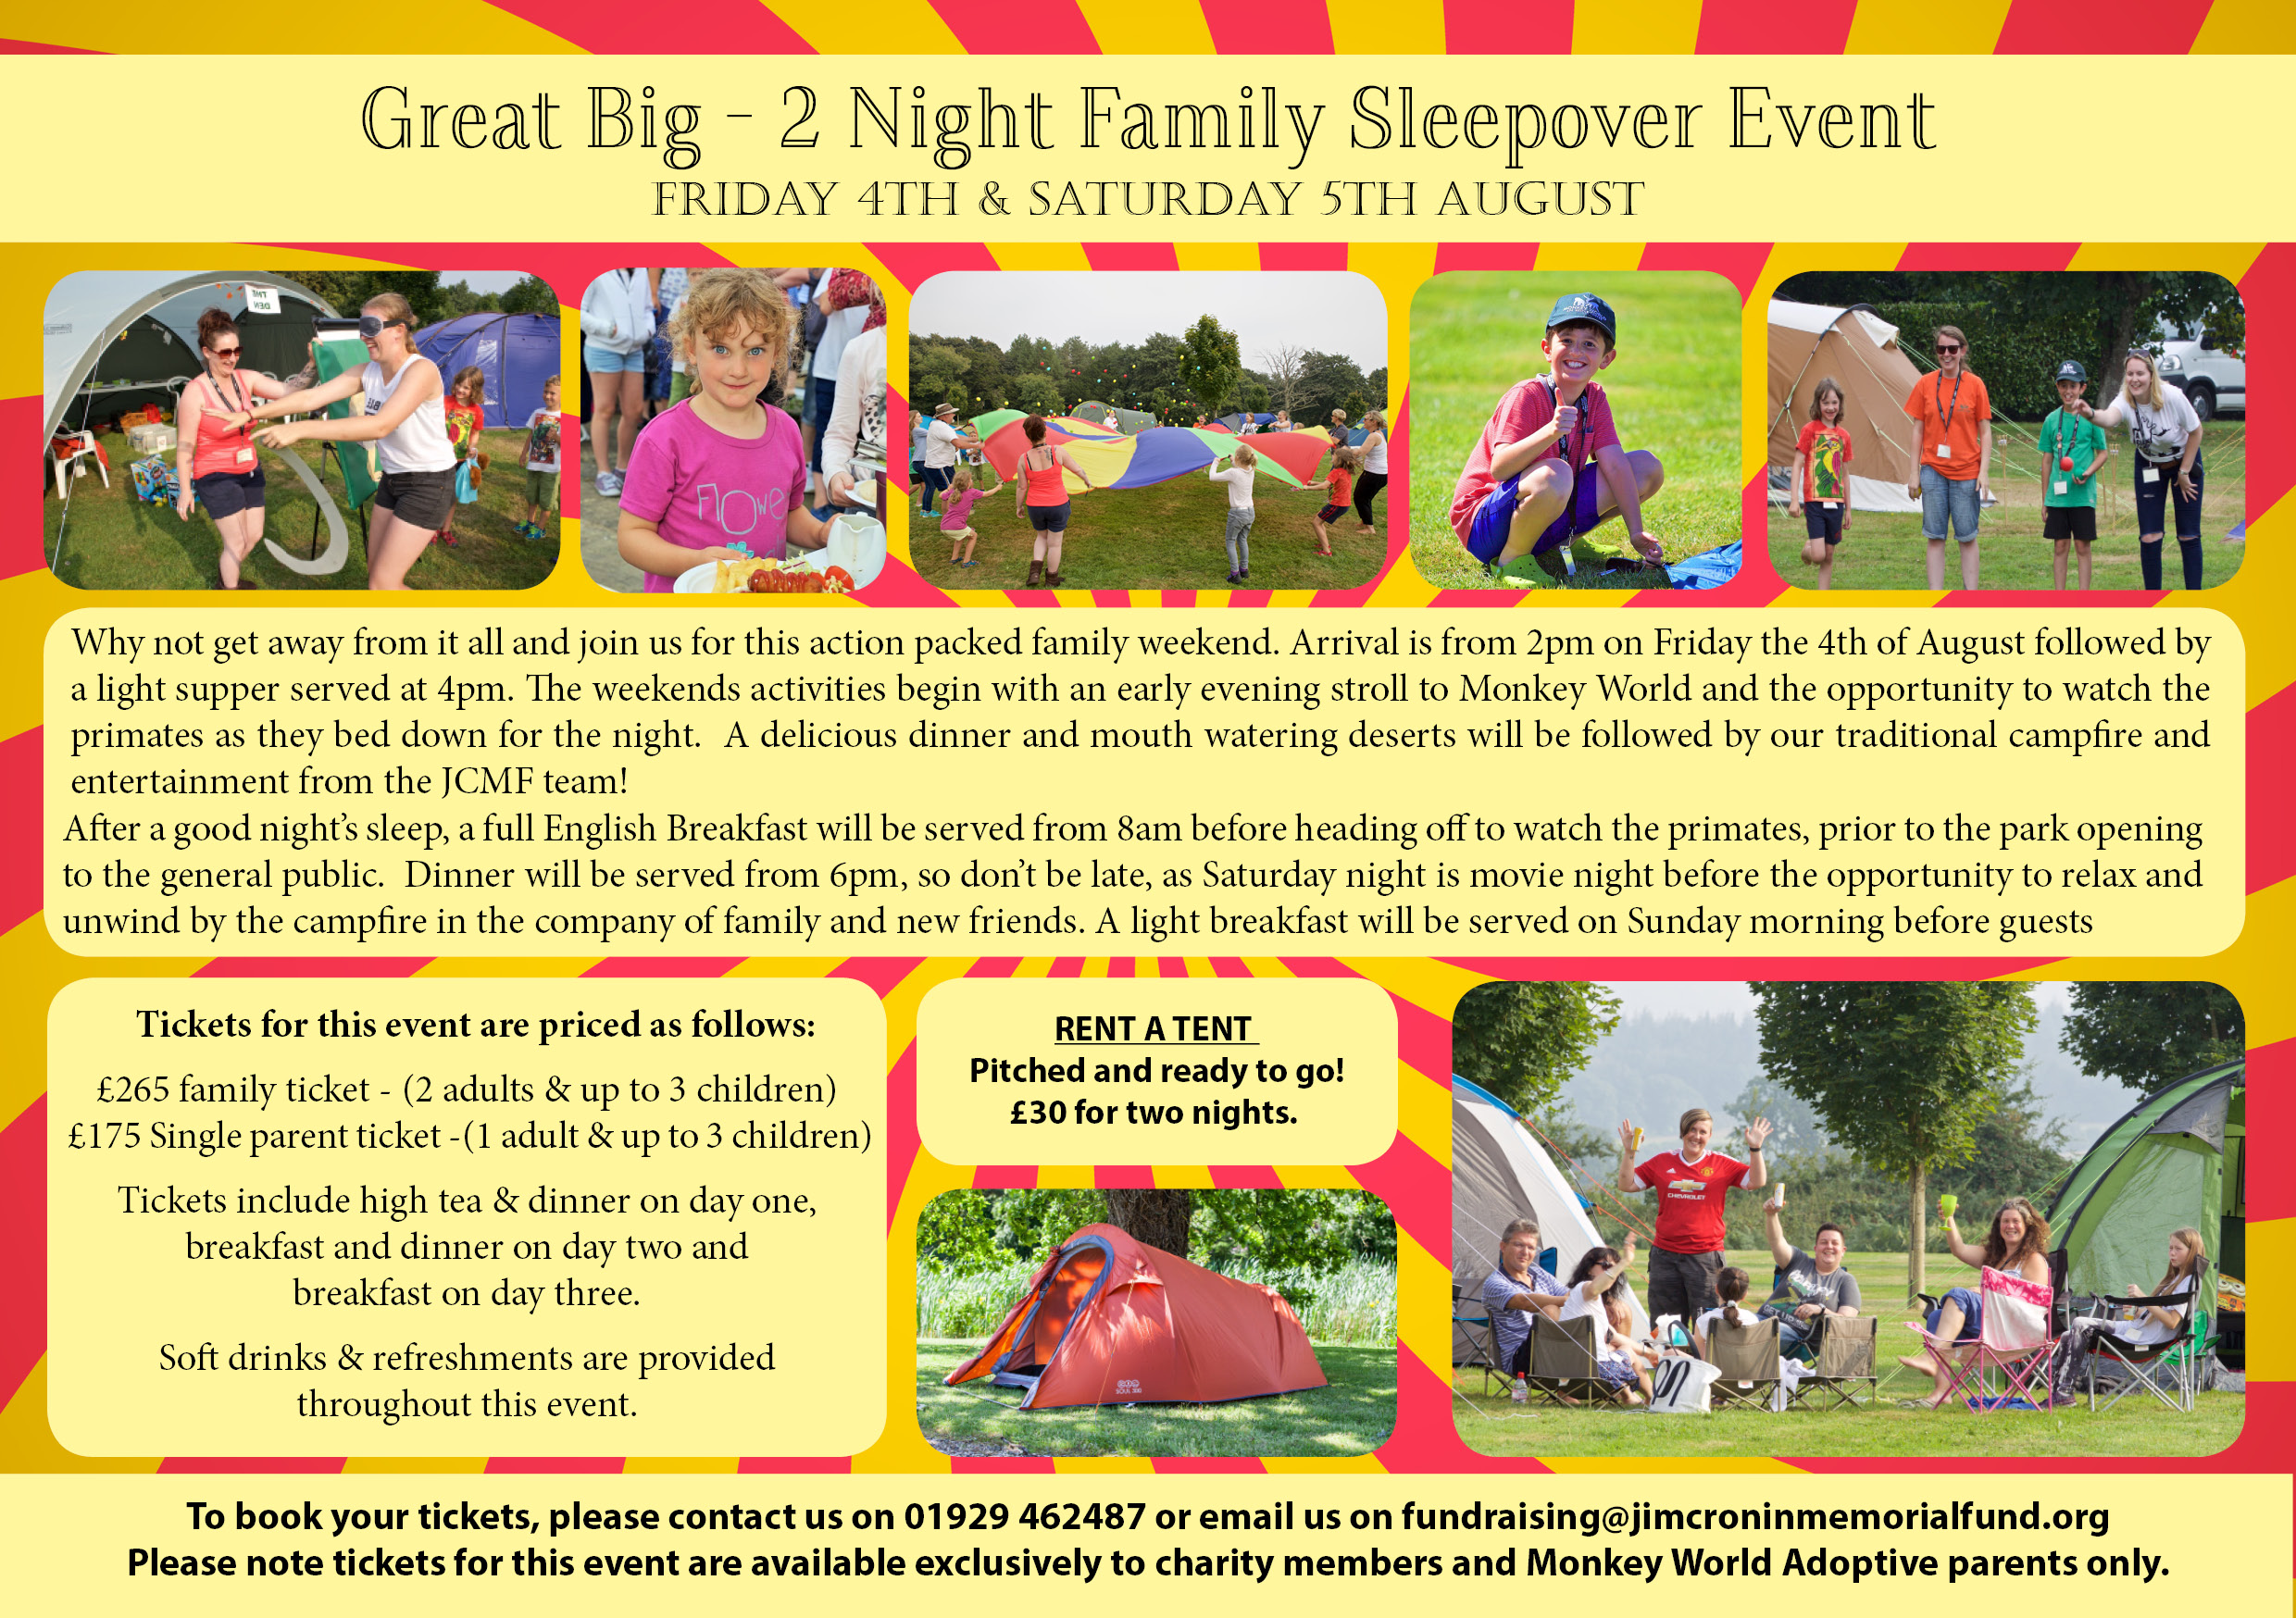 7-family-great-big-2-night-sleepover-event-final